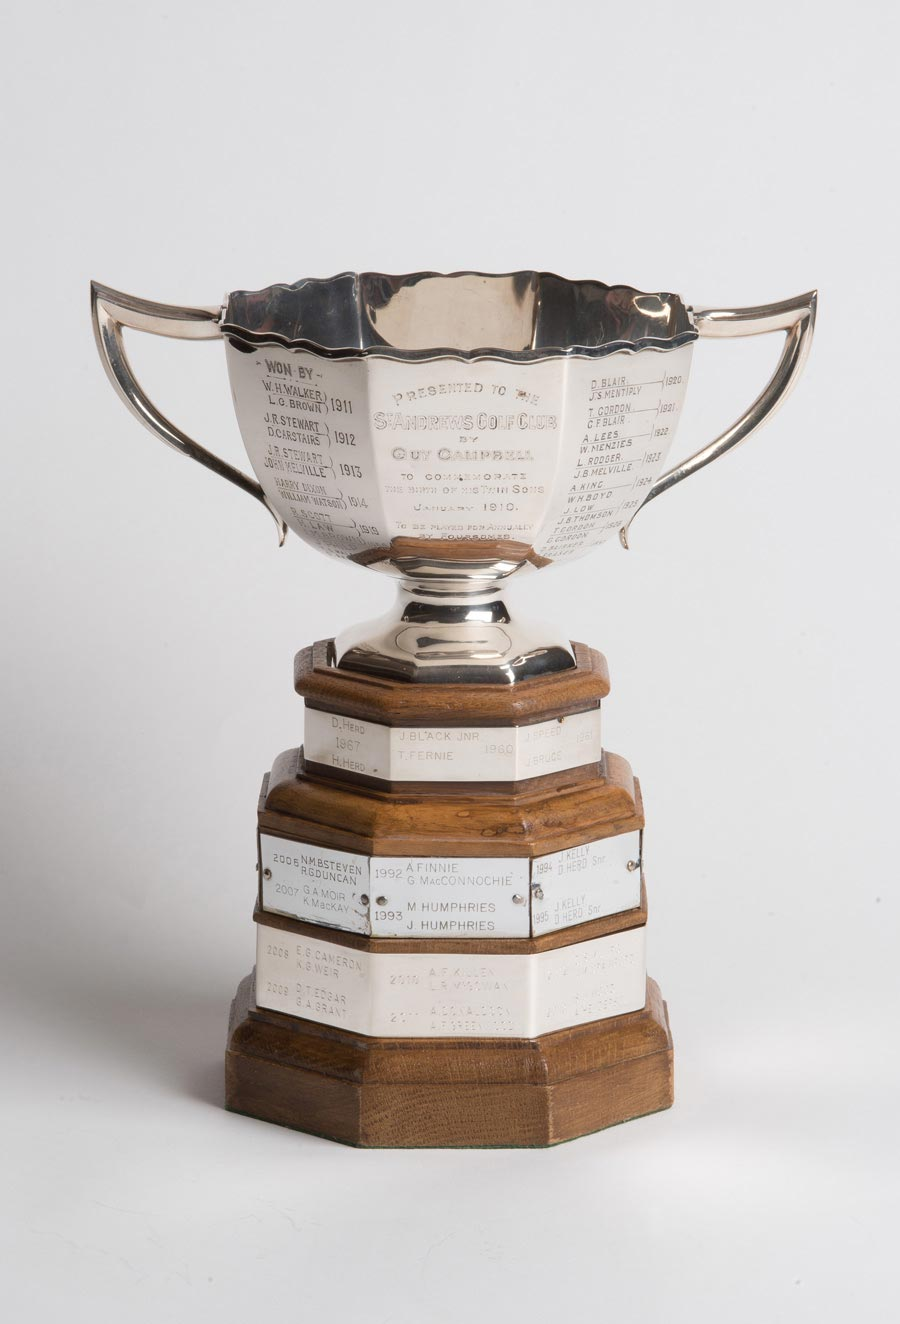 Guy Campbell Cup